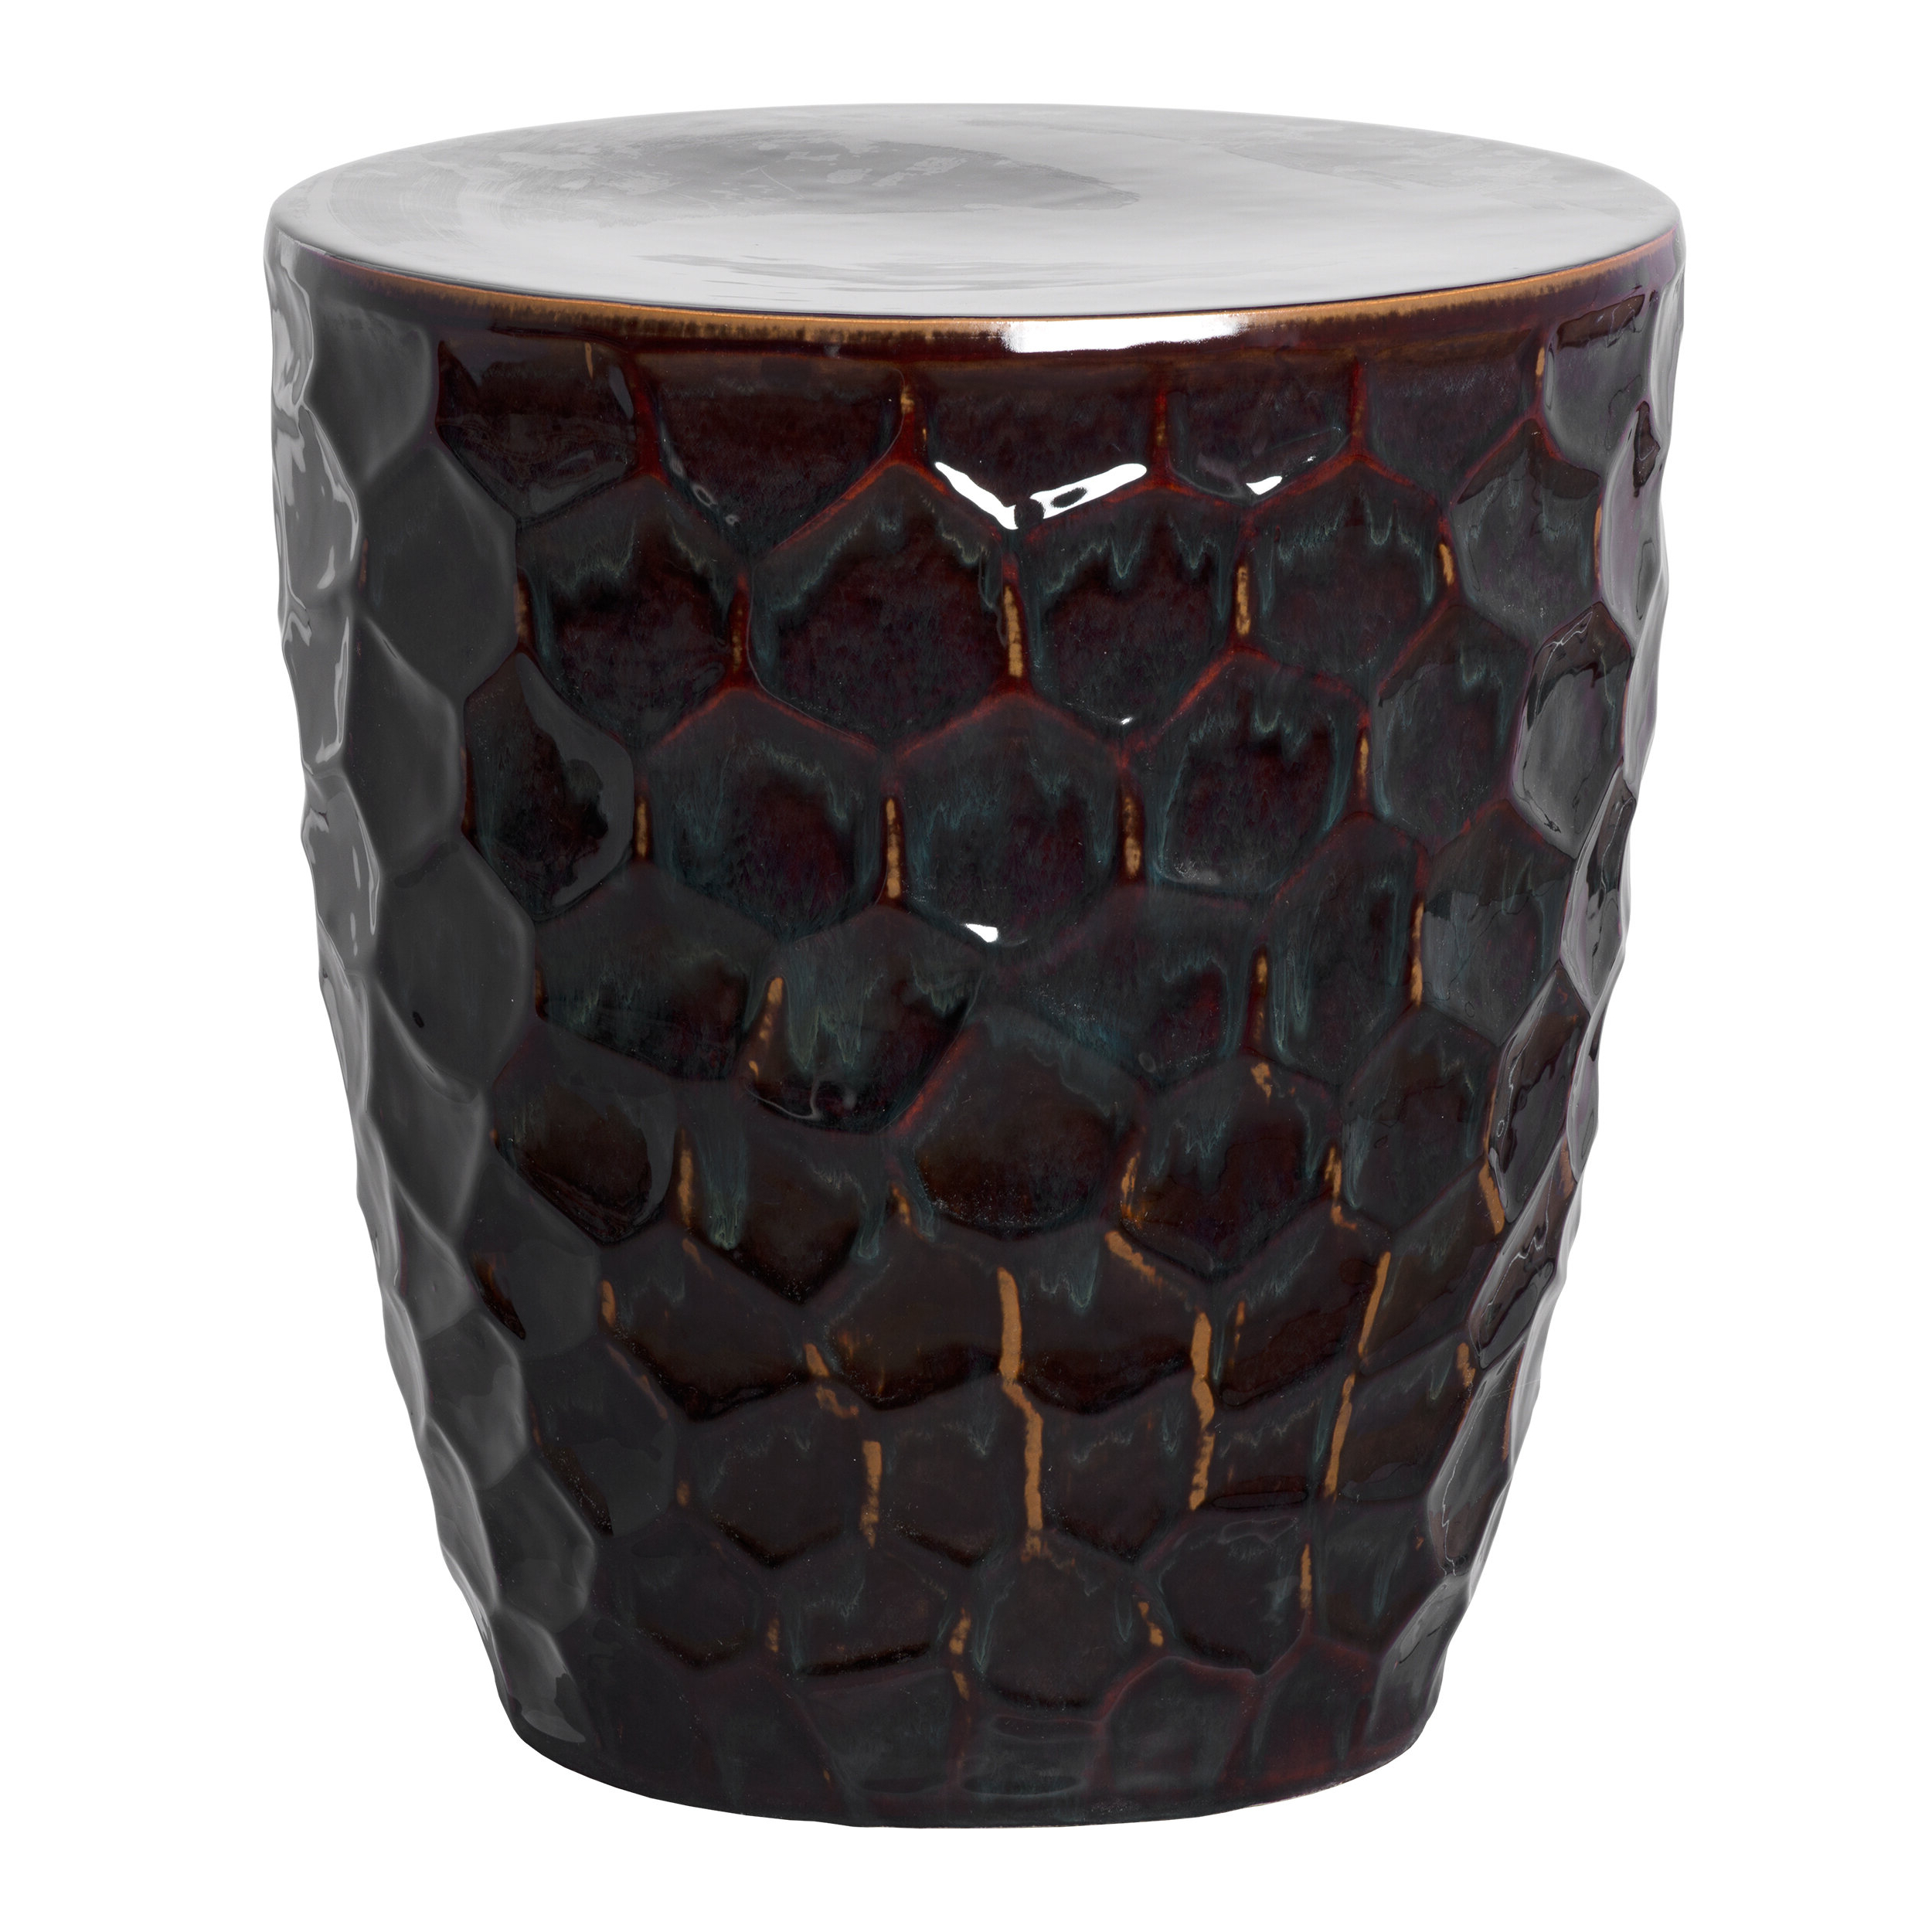 Honeycomb Garden Stool Throughout Most Popular Fifi Ceramic Garden Stools (View 10 of 30)